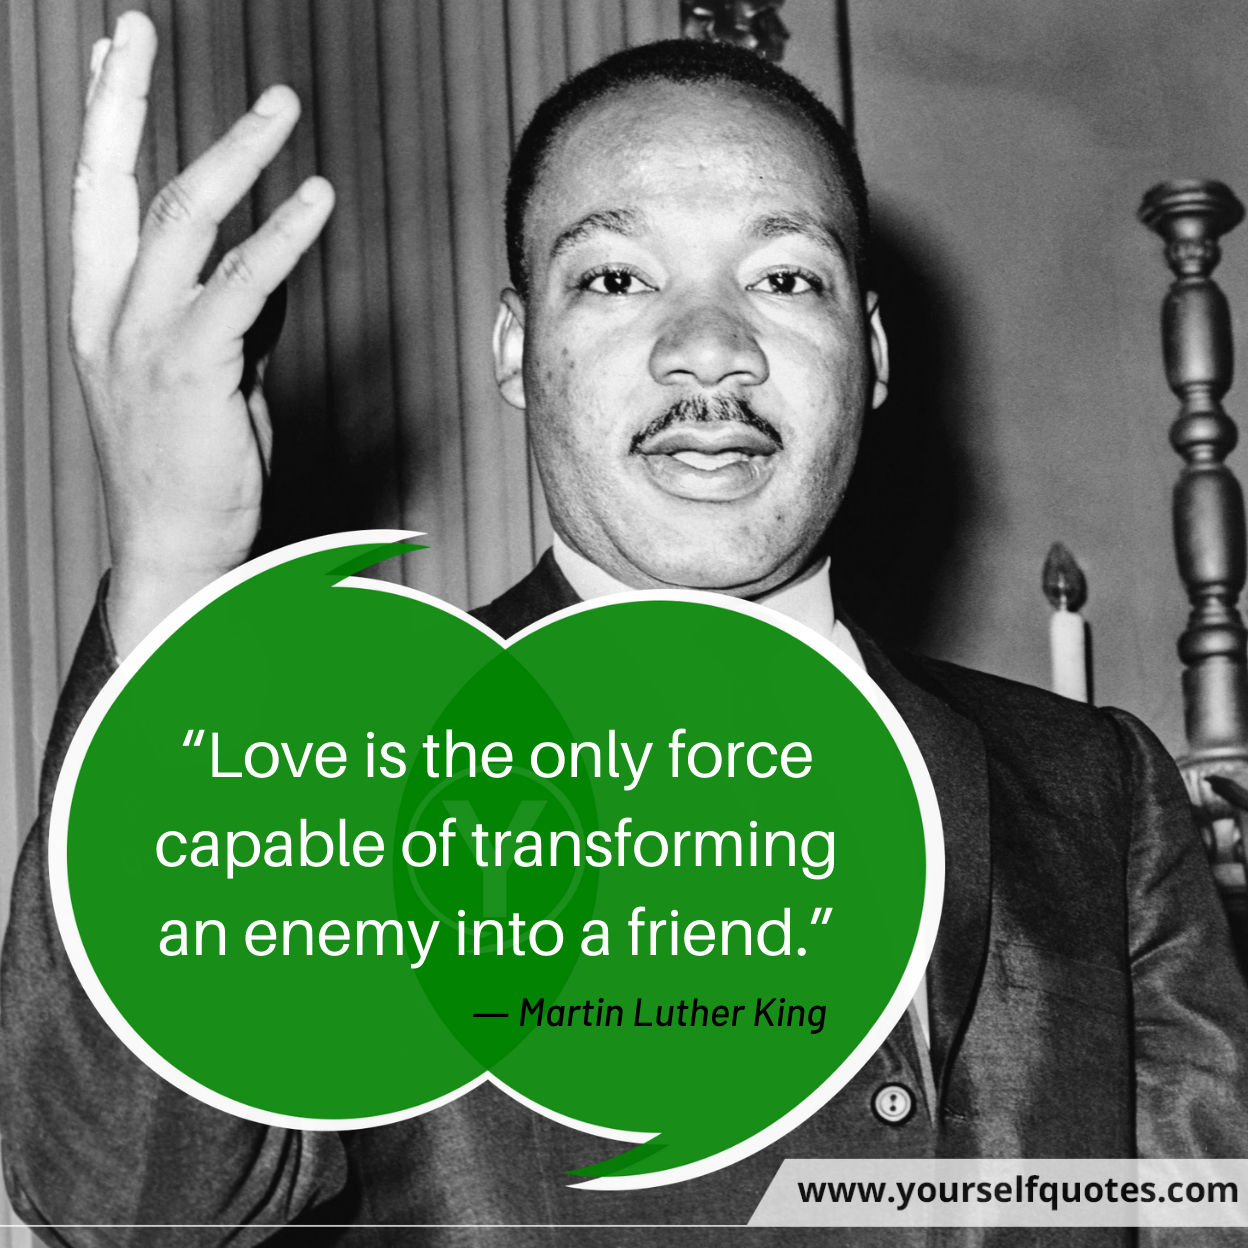 Quotes on Love by Martin Luther King